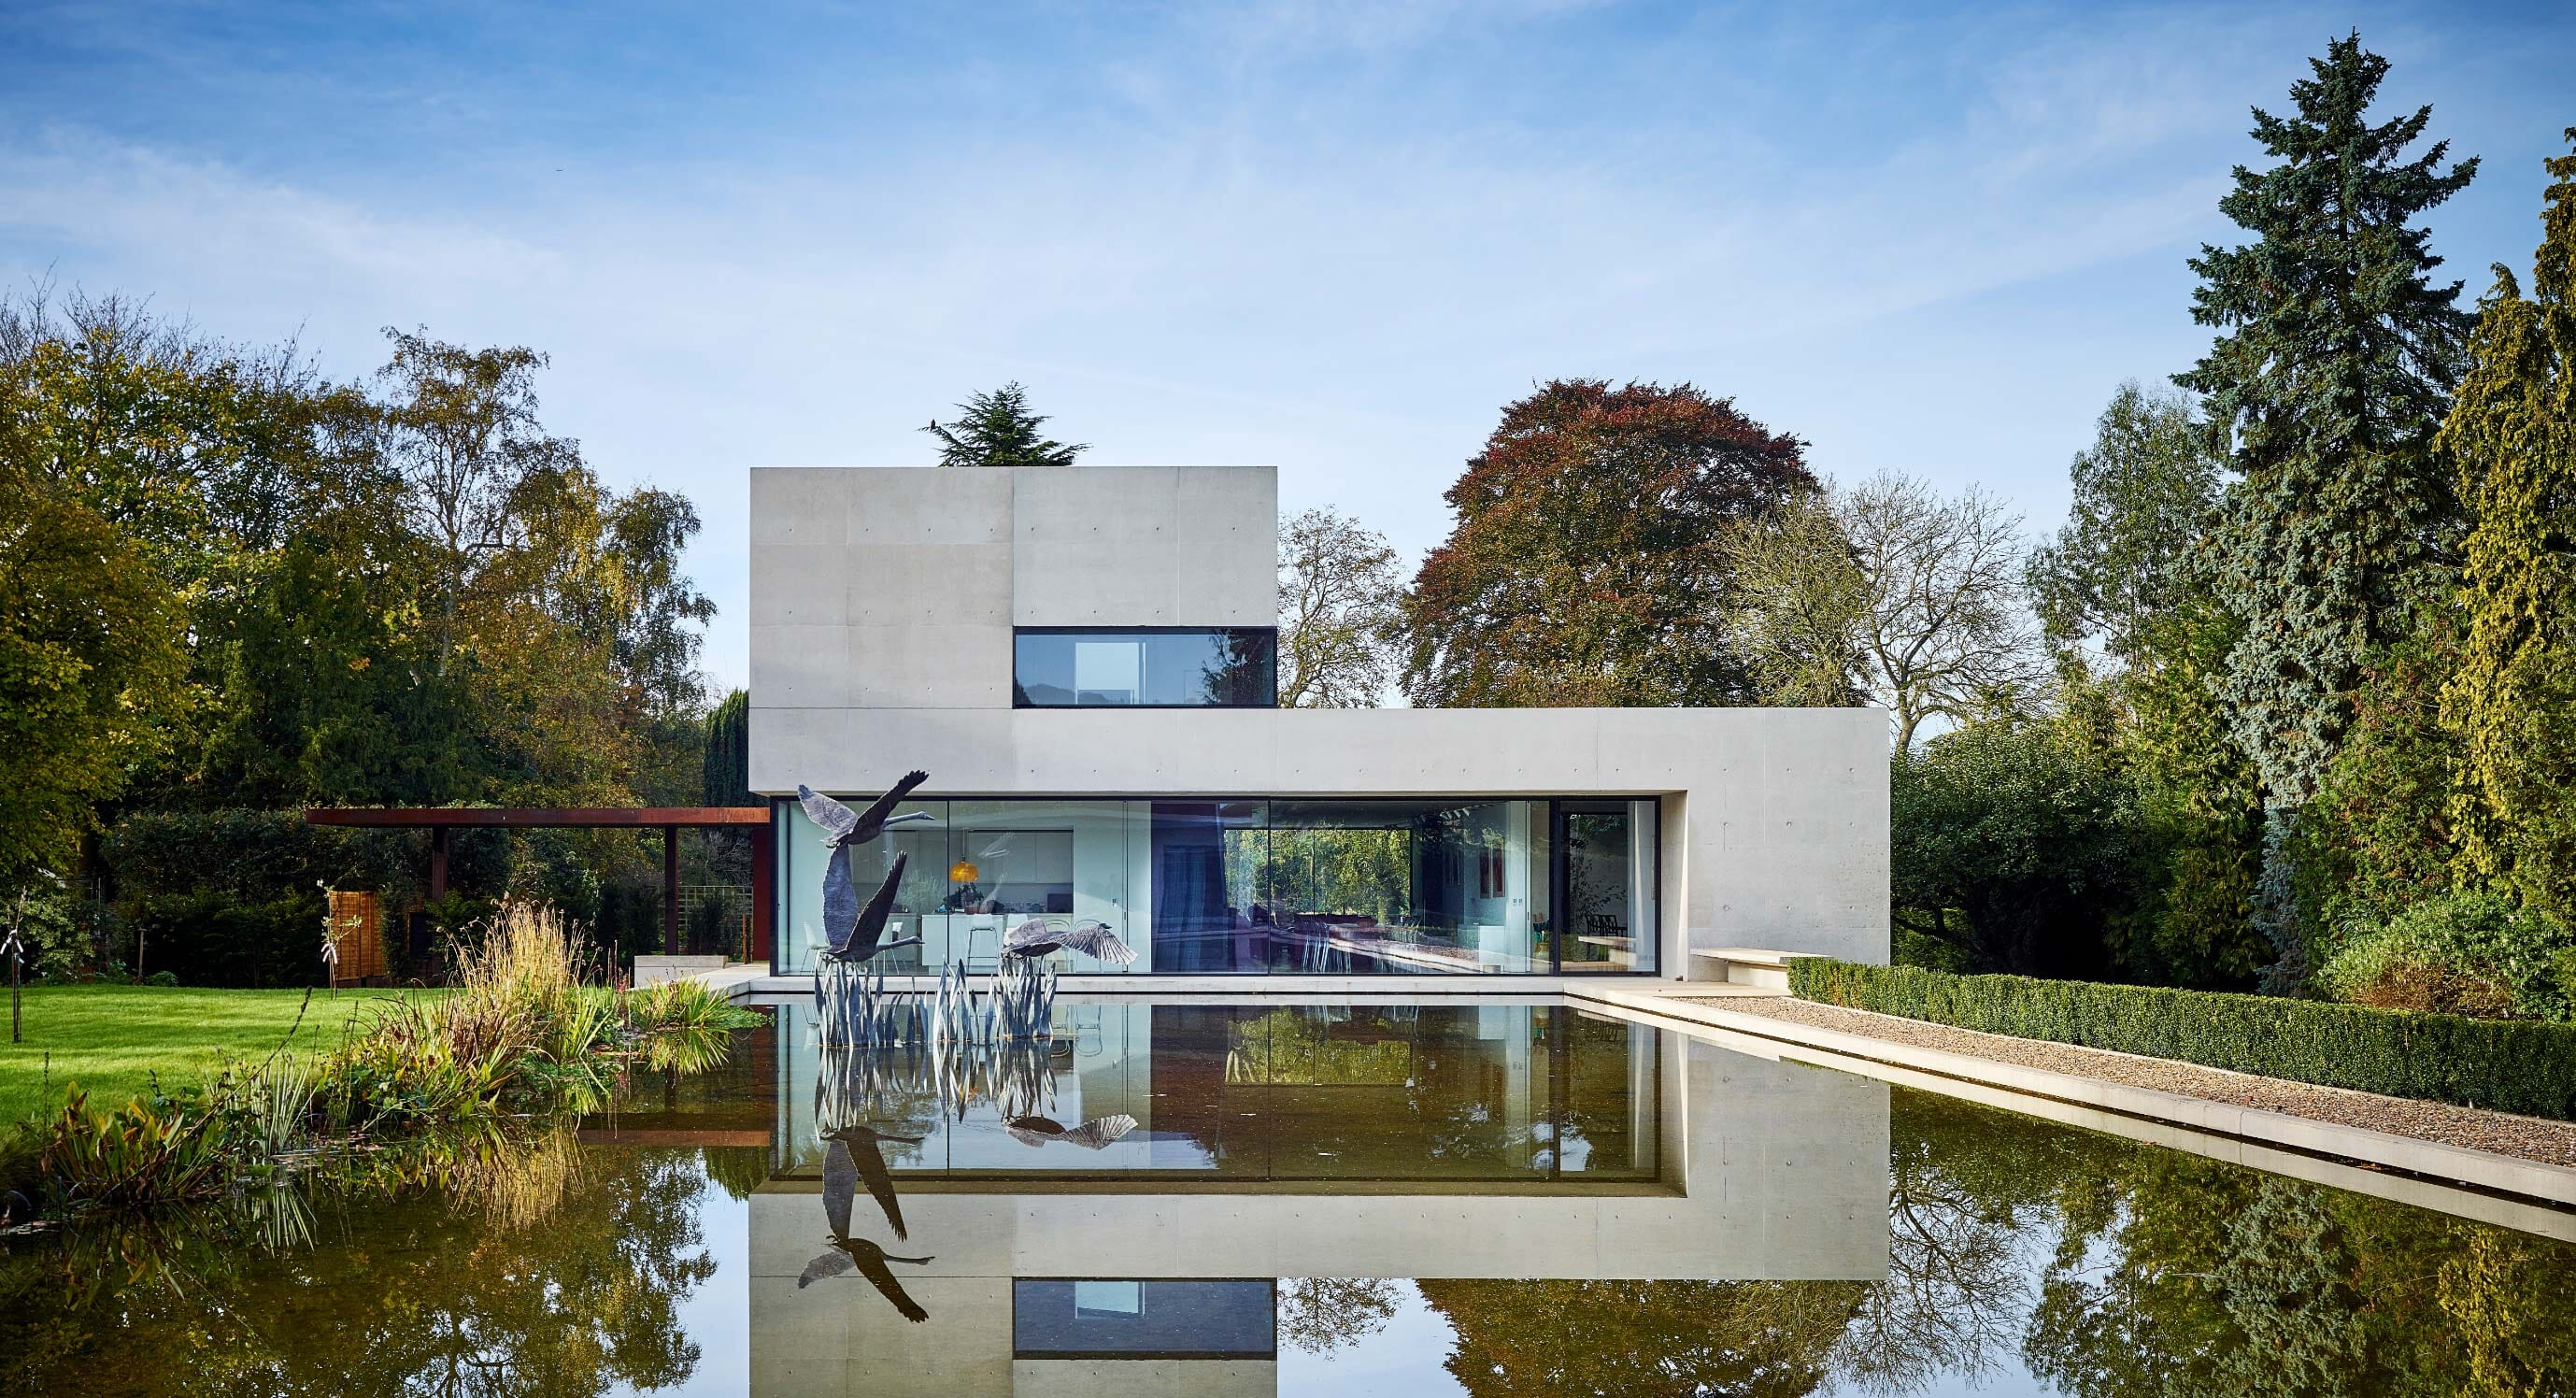 Pheasants By Amin Taha & Sarah Griffiths Shortlisted For RIBA House of the Year